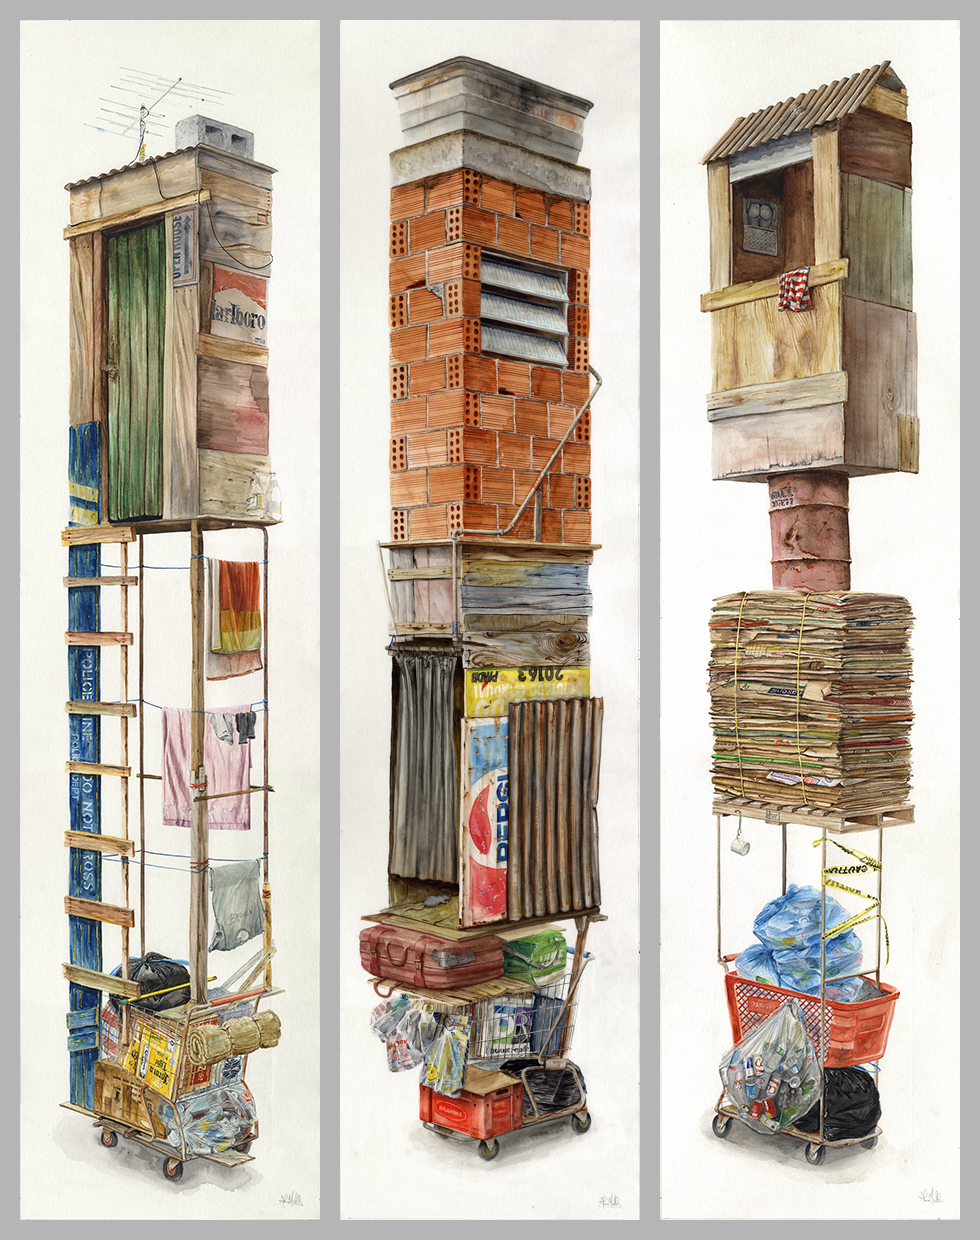 """""""Jupiter, 513"""", """"Camino Real, 783"""",""""Kennedy, 297""""  2016  Watercolor on paper  60"""" x 15"""" each  Available at Thinkspace Gallery"""